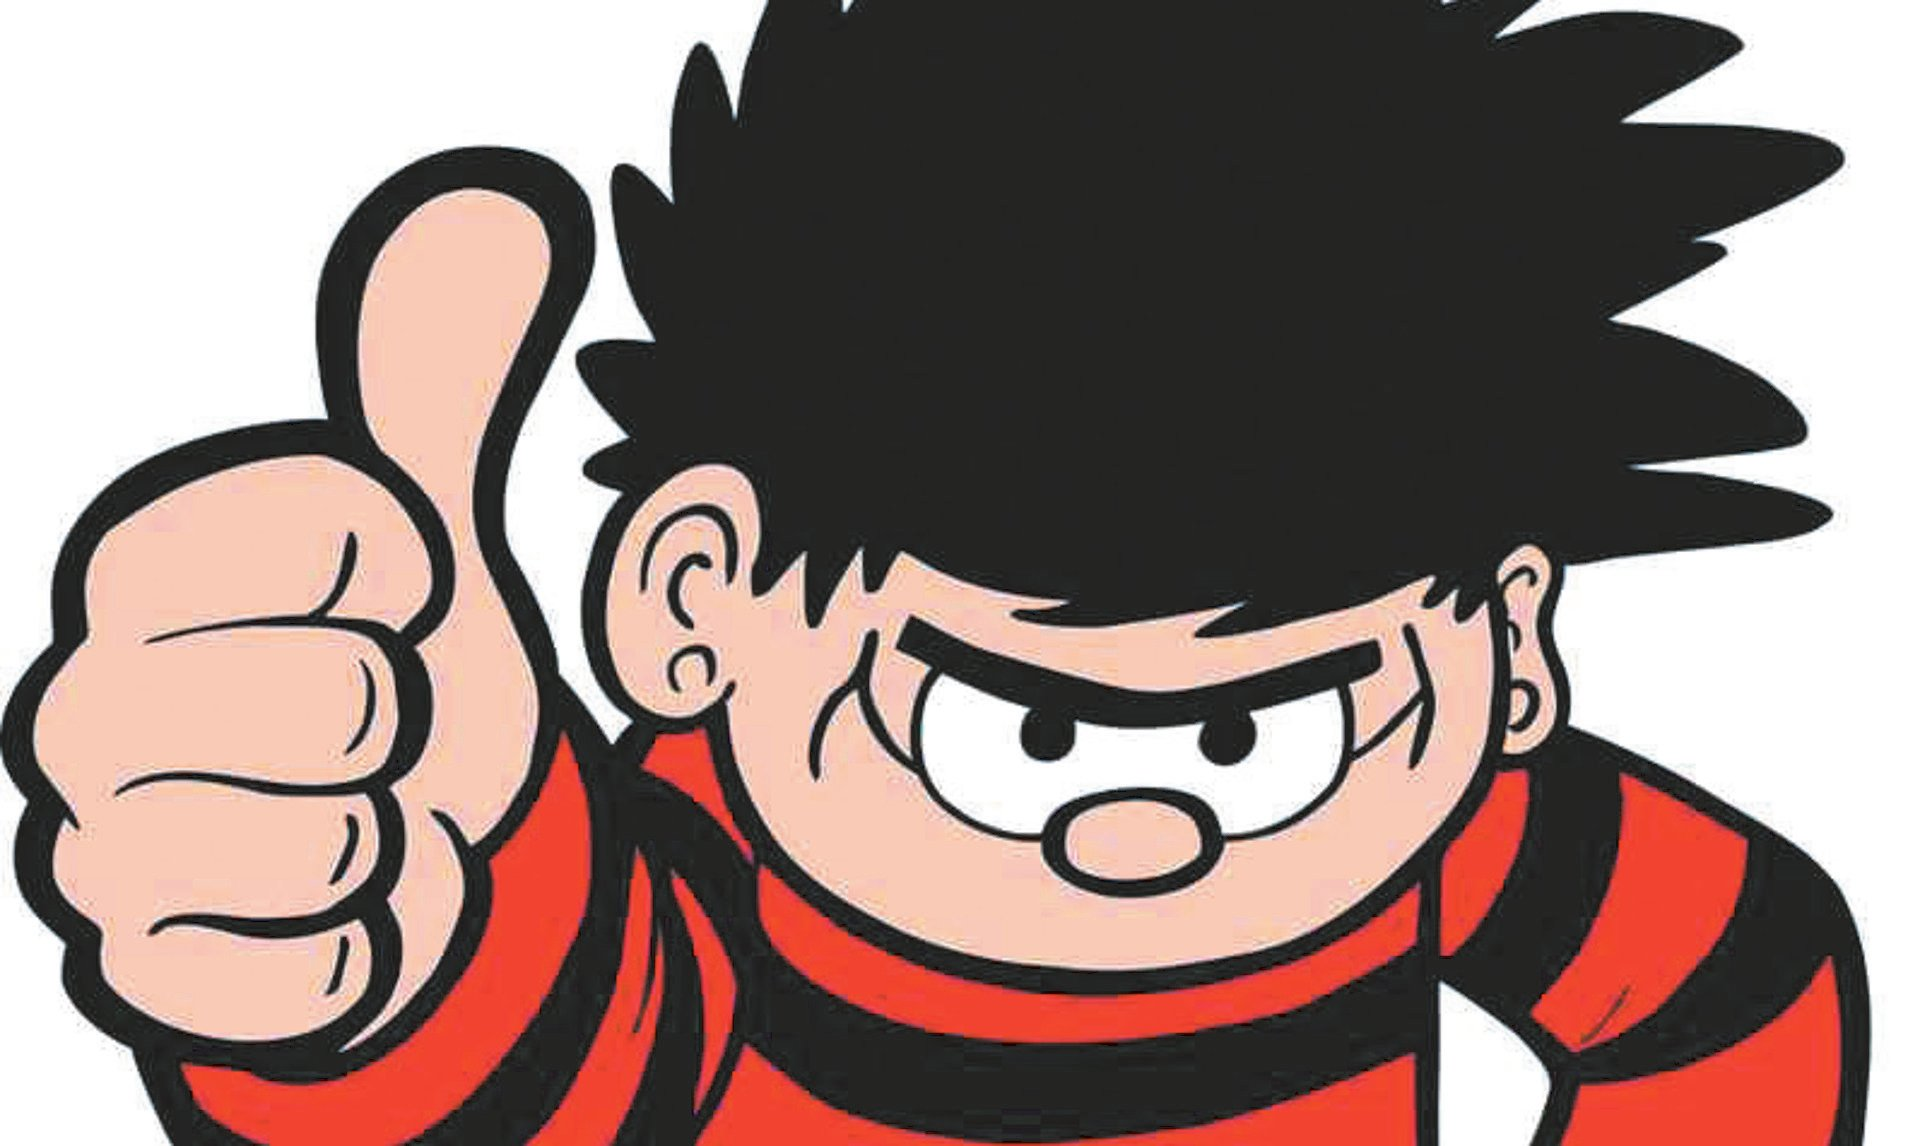 29543750 0 image a 32 1591990477743 10 Mischievous Facts About The 1993 Dennis The Menace Film